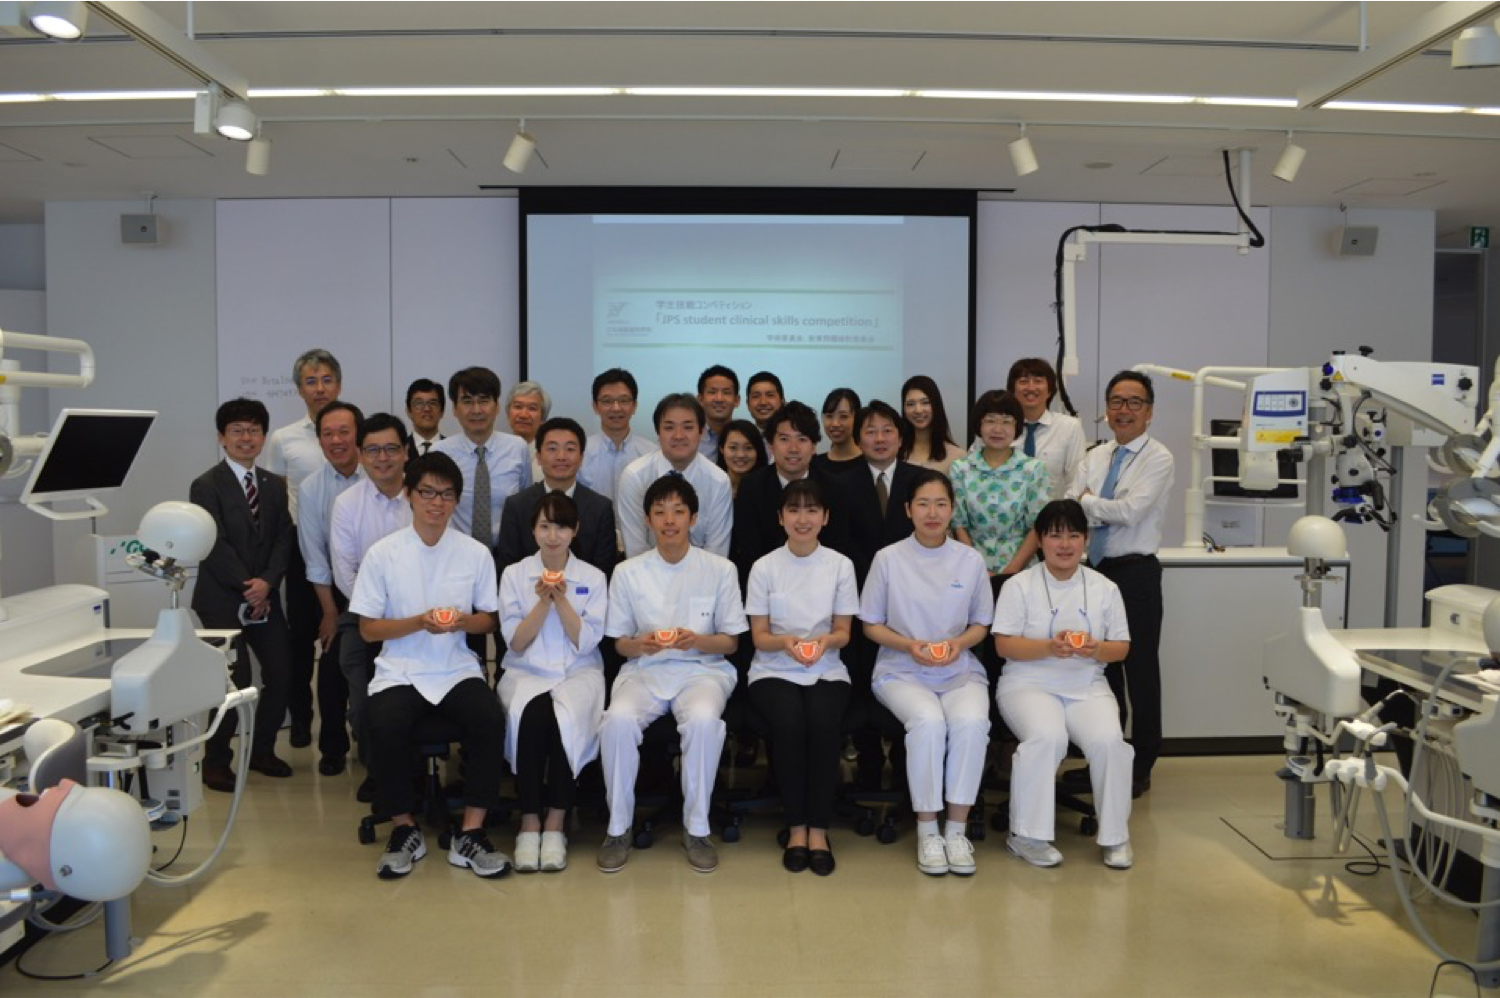 2019年6月16日 JPS student clinical skills competition